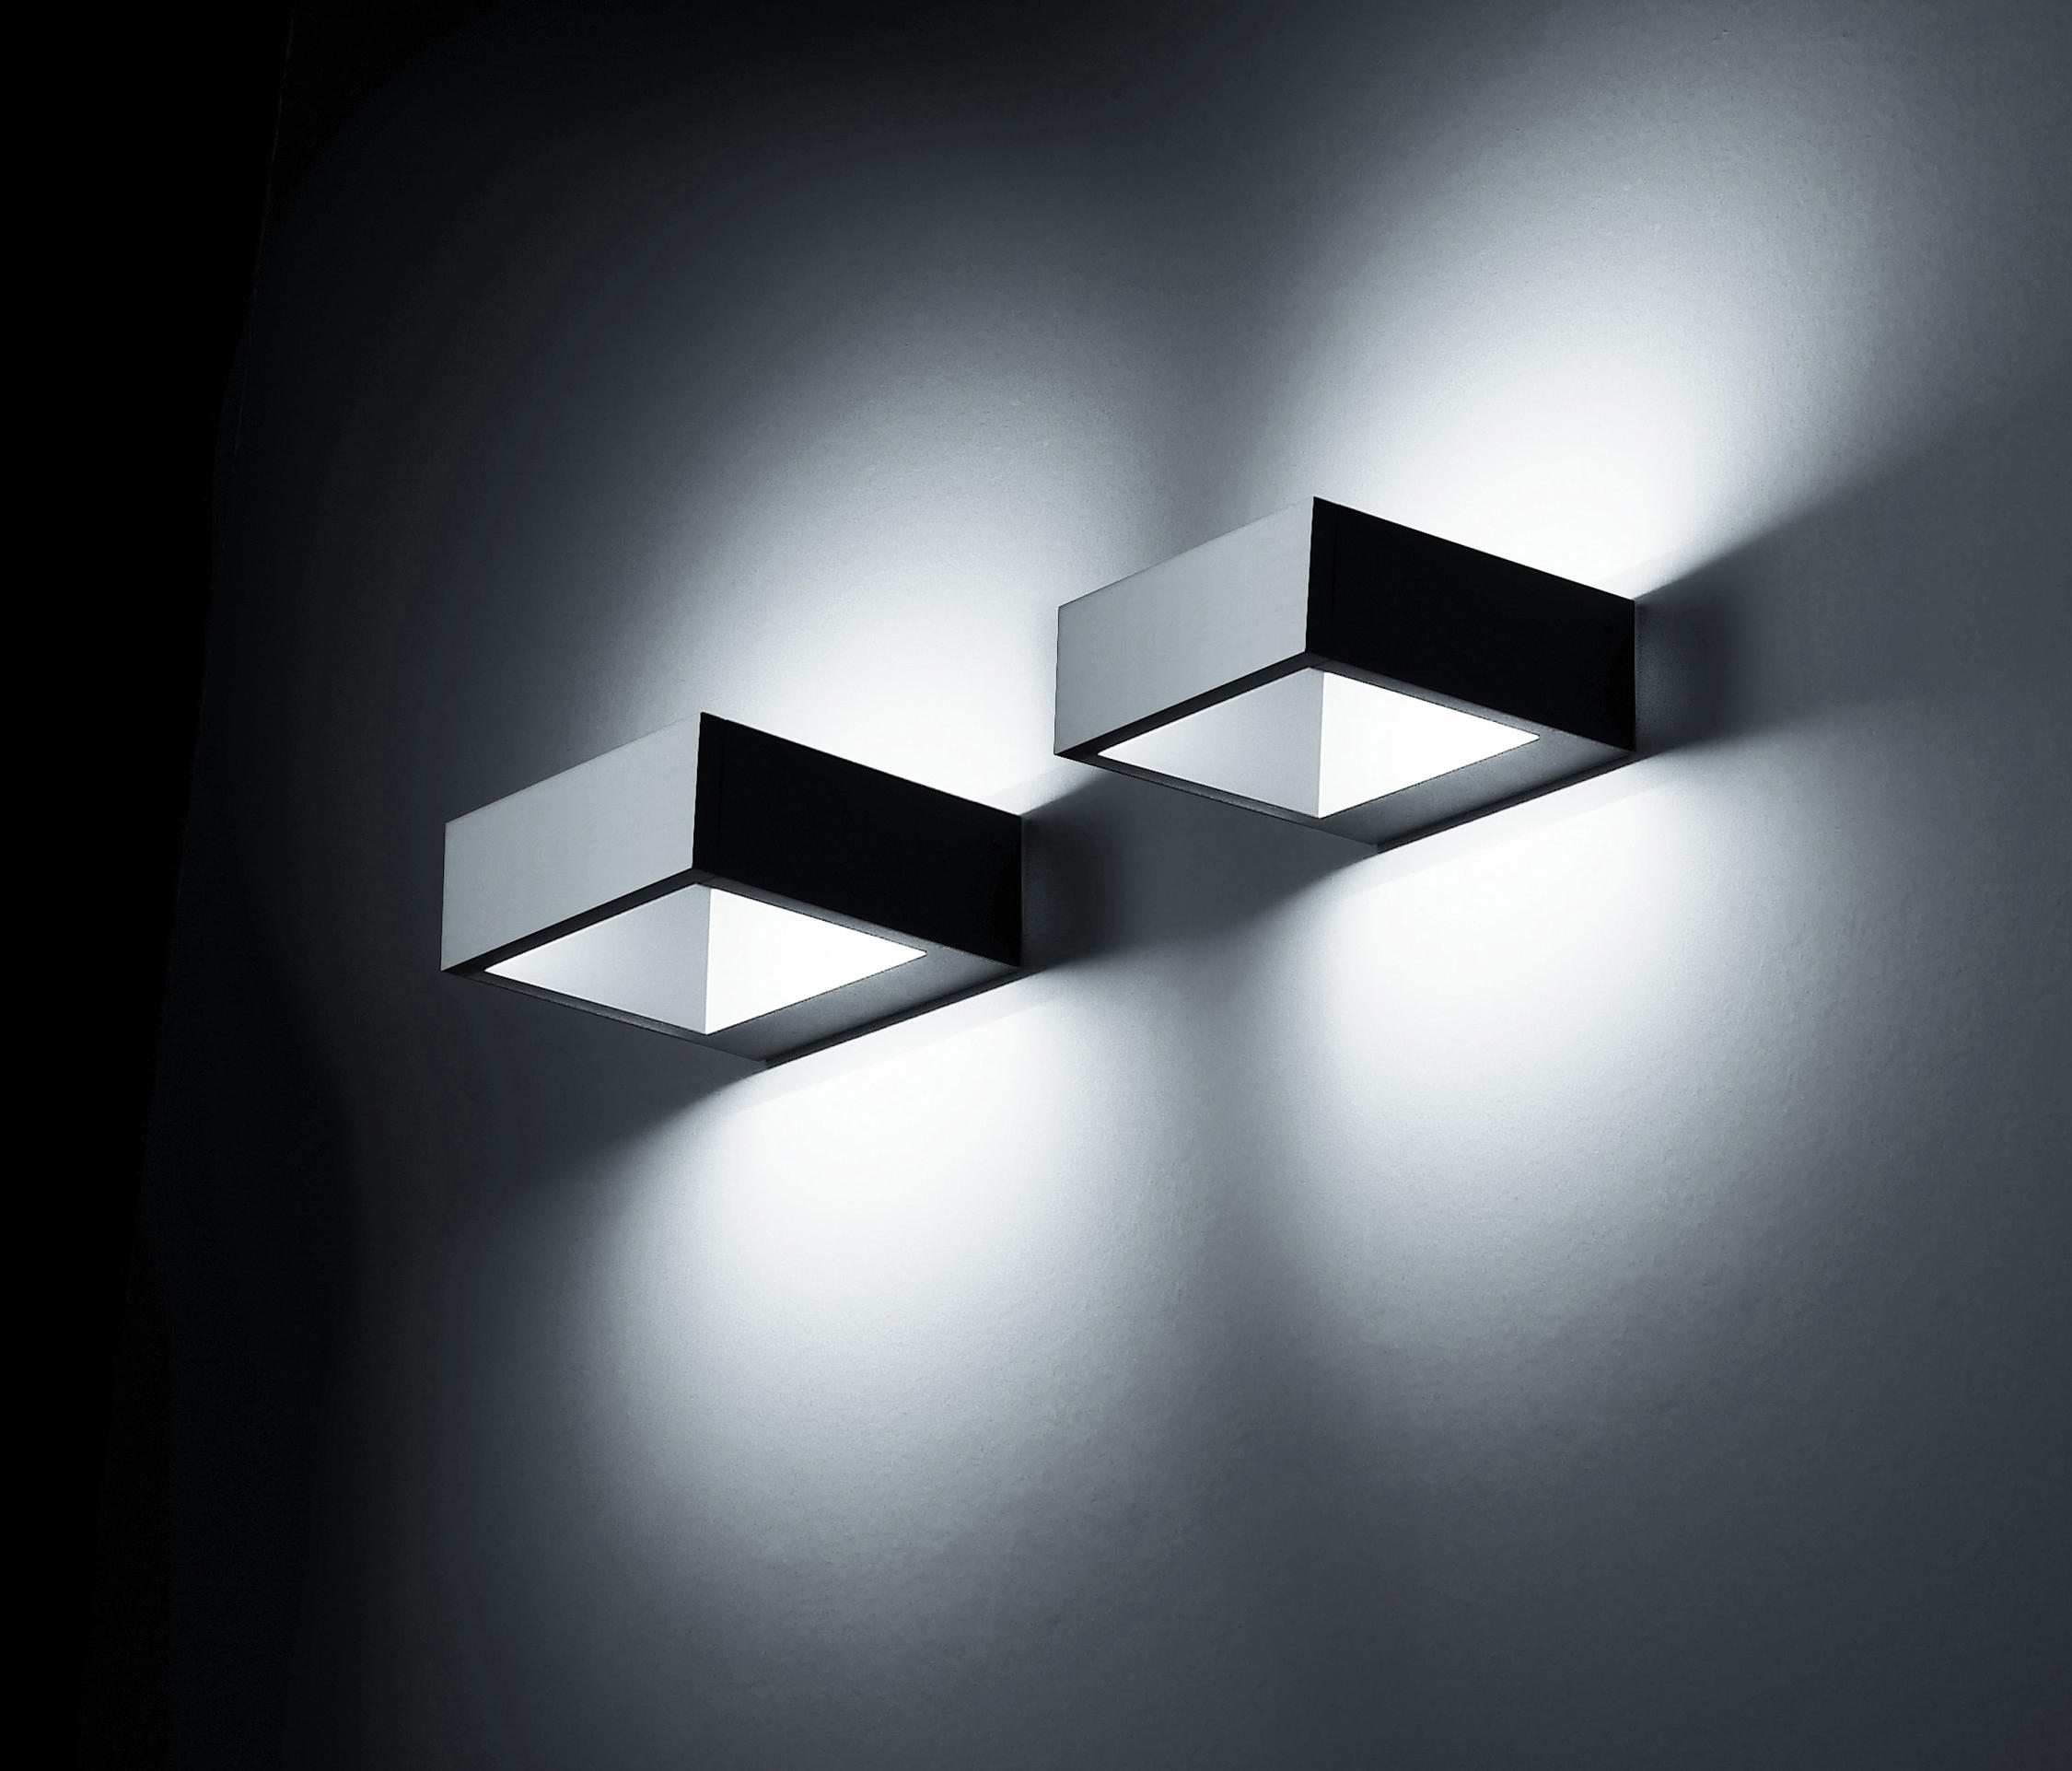 Cool Square Wall Mounted Lights From Simes Architonic